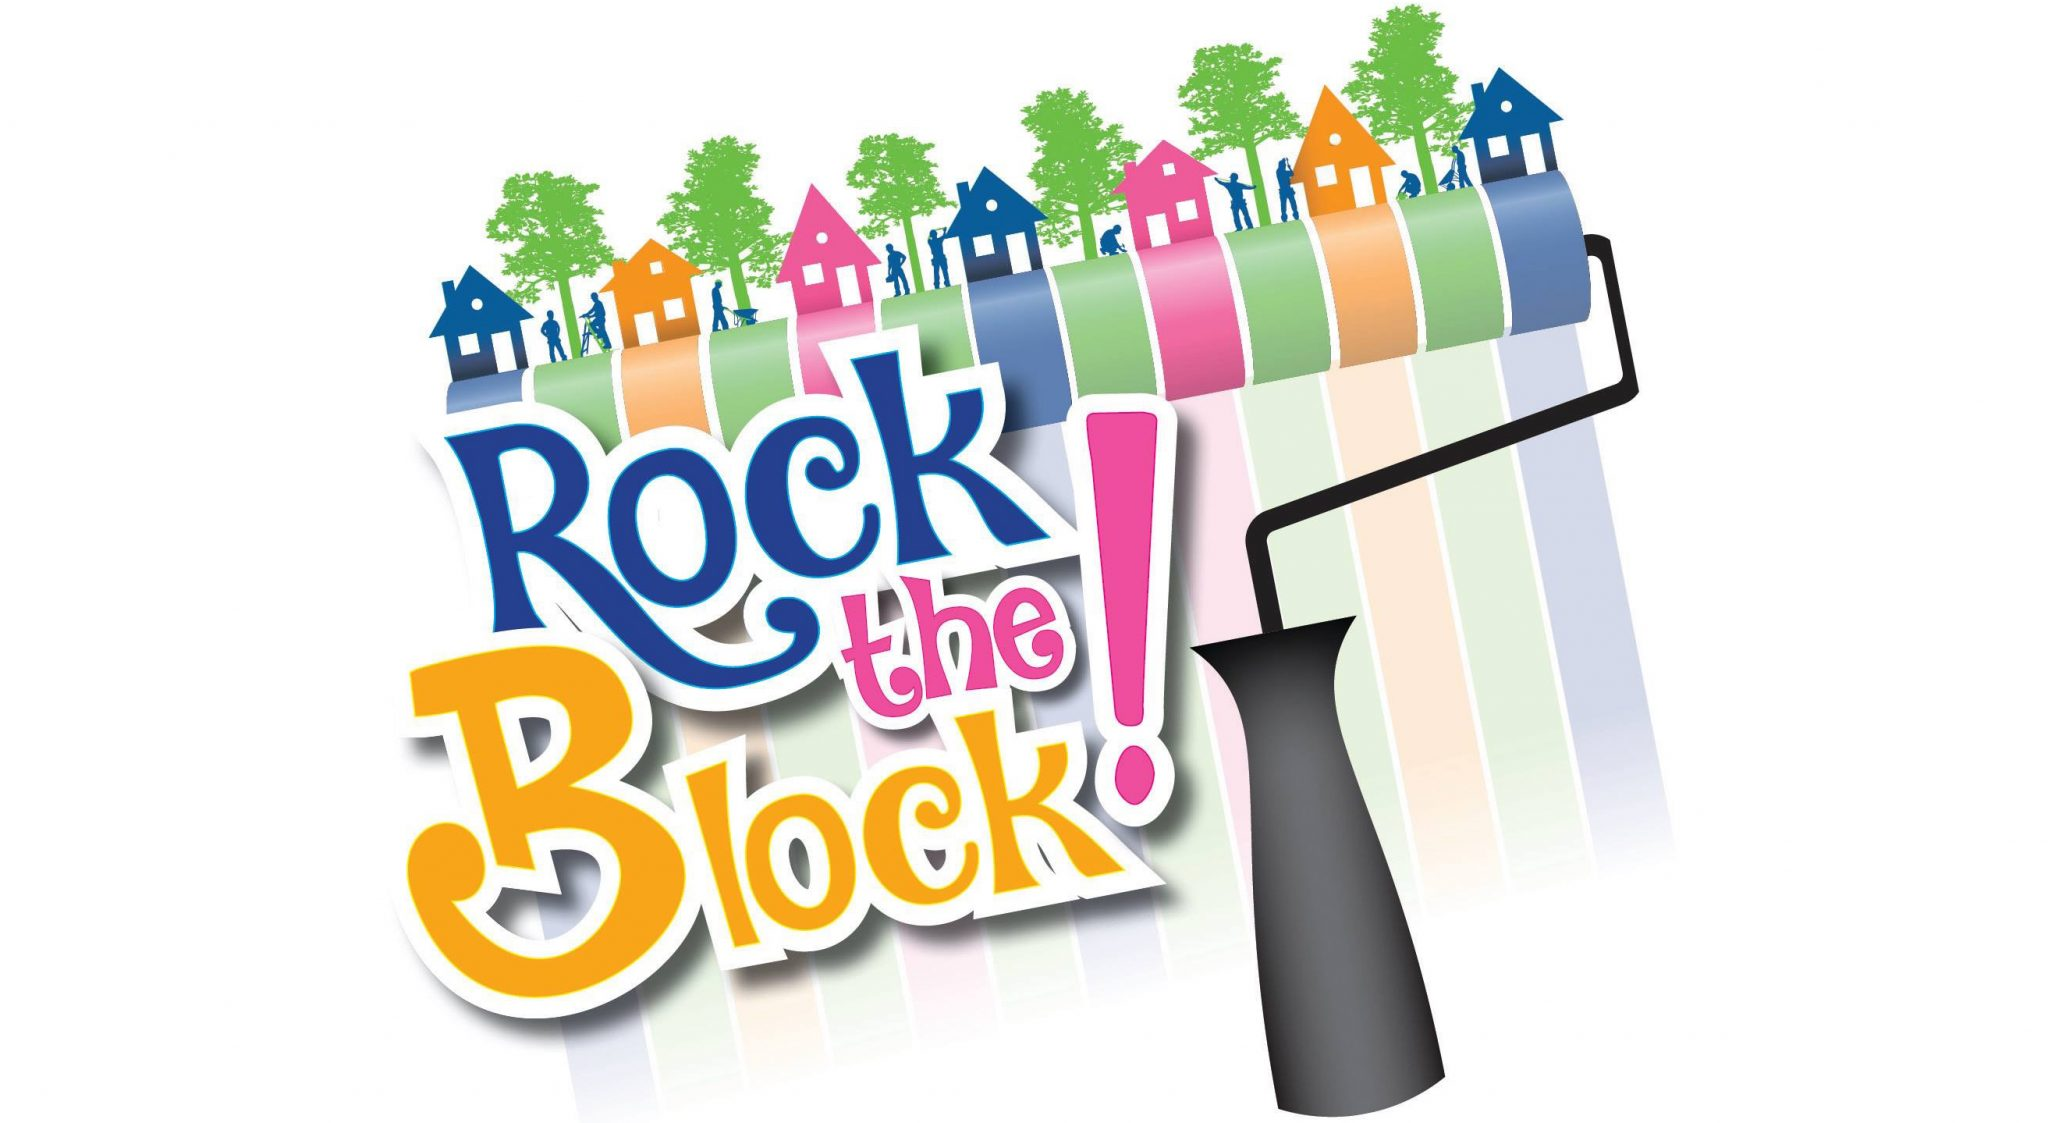 Rock the Block – New Neighborhood To Be Announced